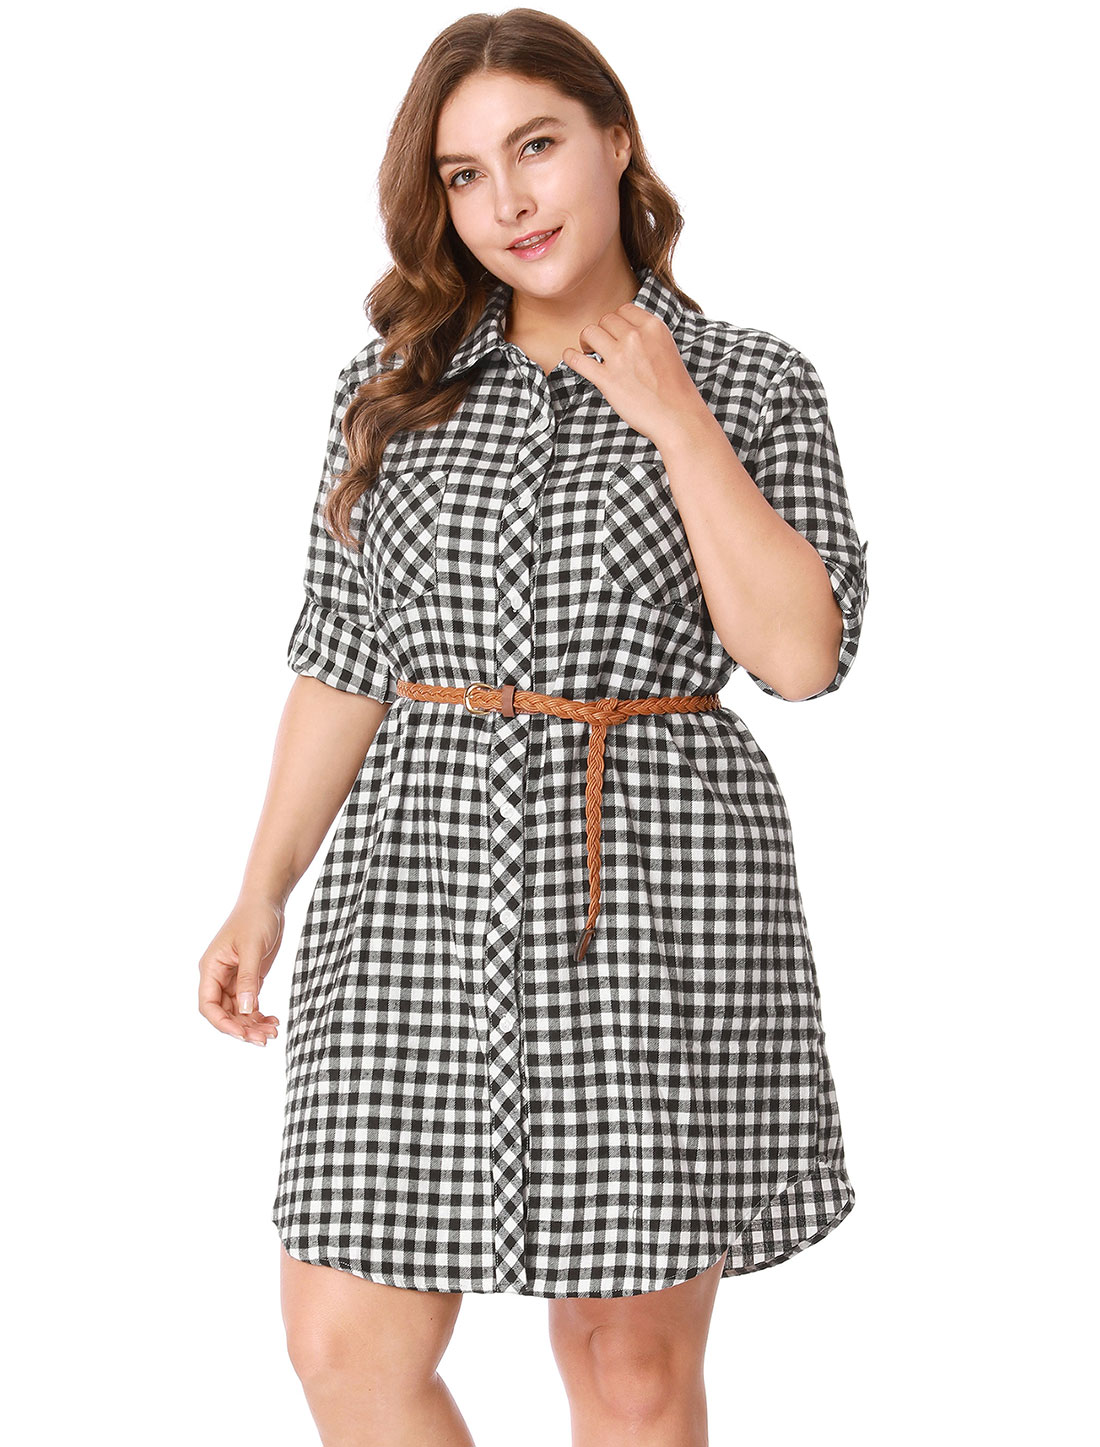 Women Plus Size Roll Up Sleeves Belted Plaid Shirt Dress Black White 3X